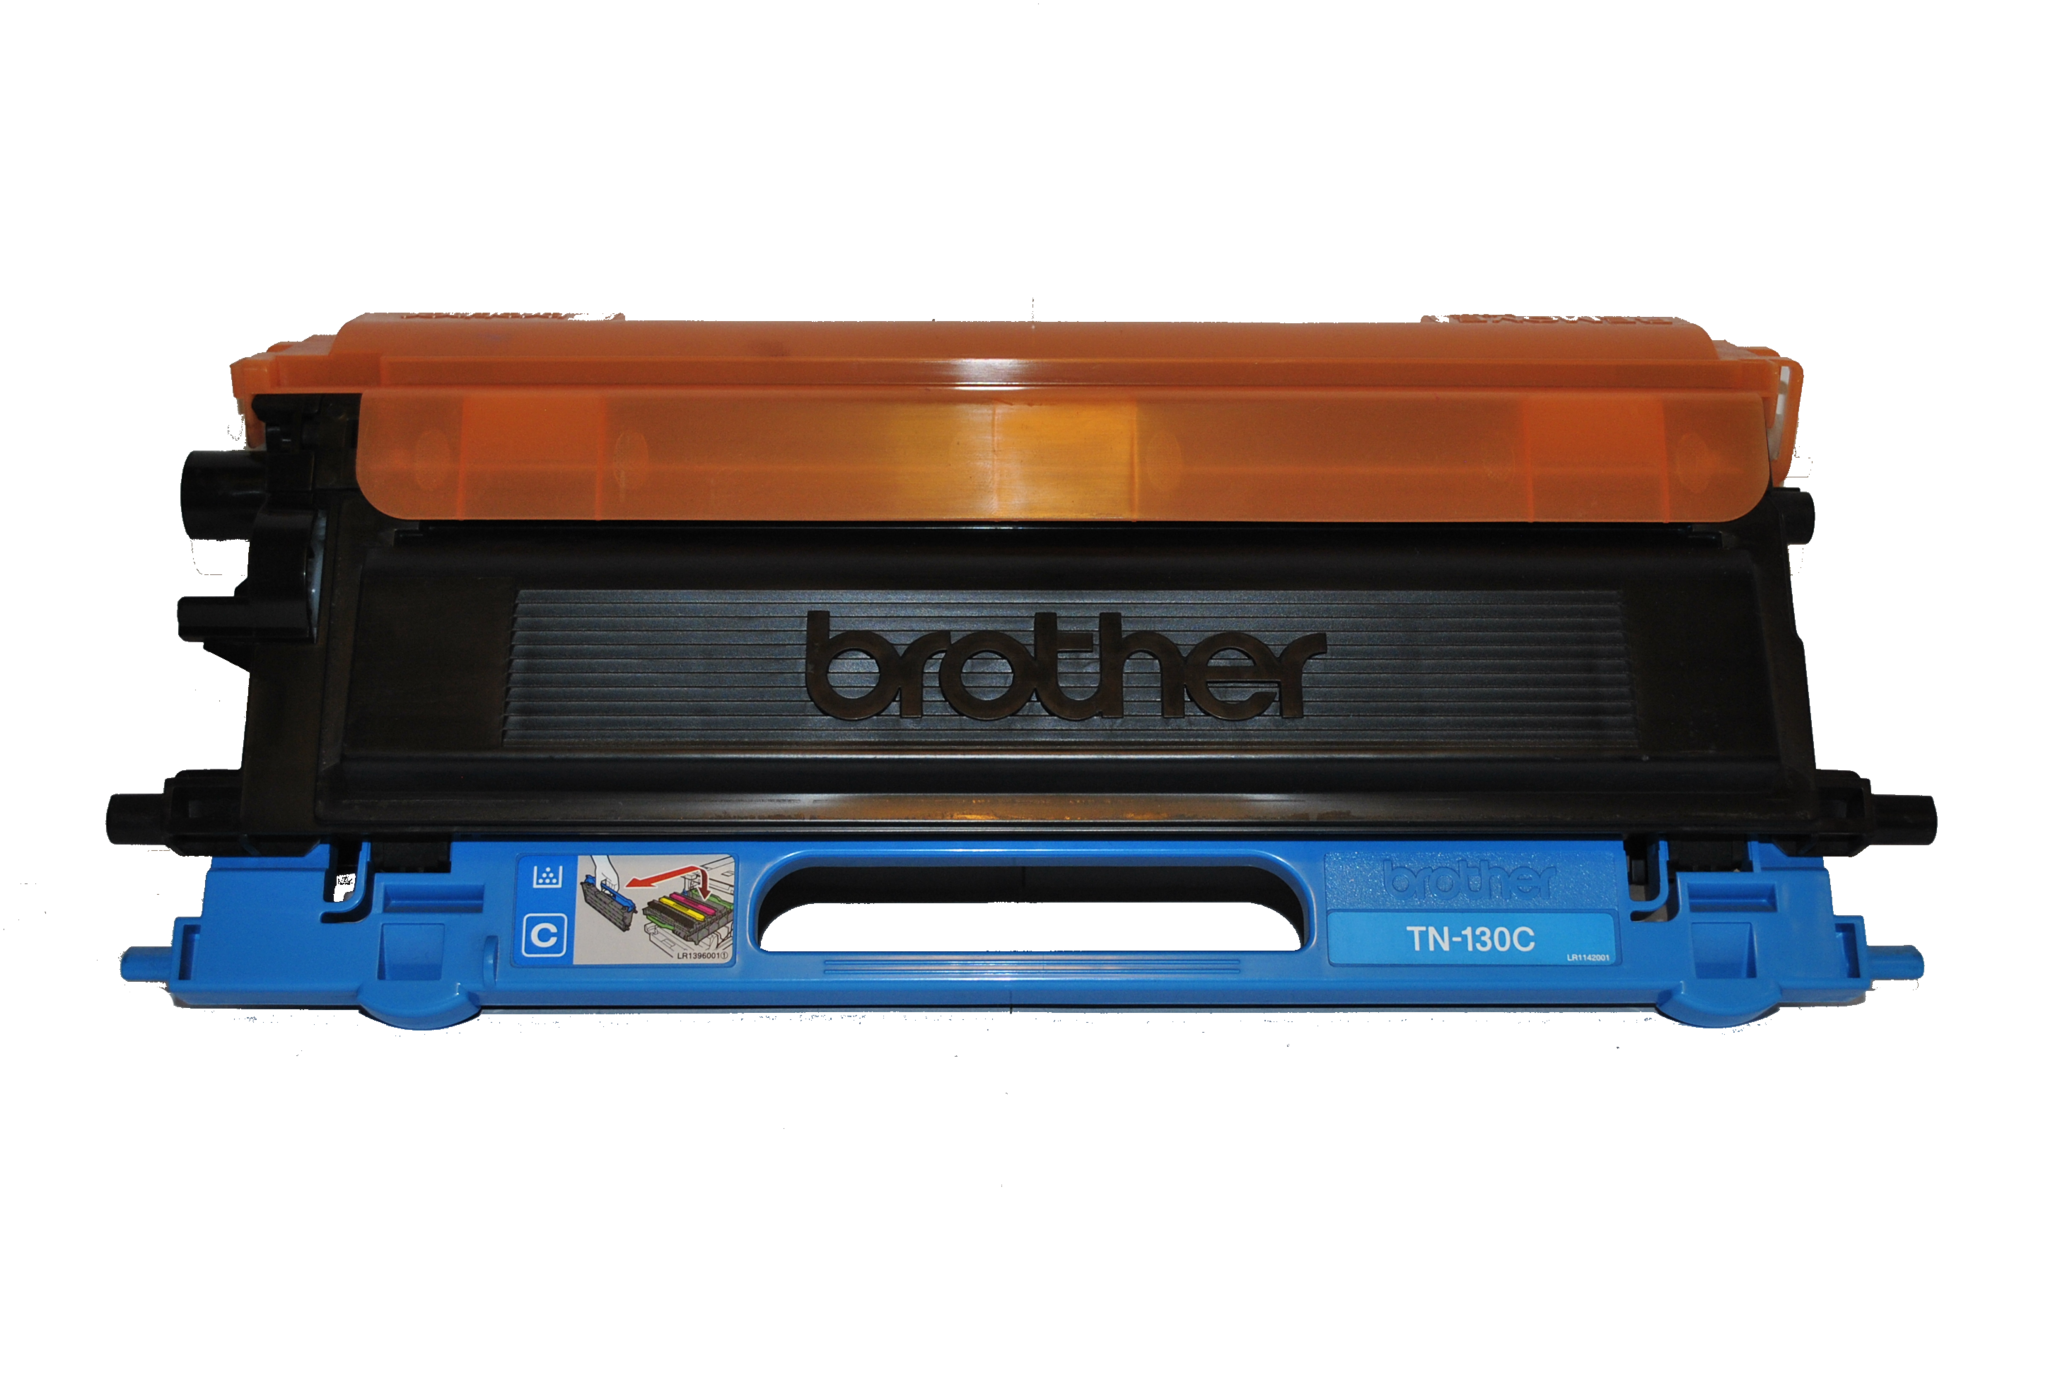 картинка Картридж TN-130C для Brother HL-4040CN/4050CDN/DCP-9040CN/MFC-9440CN (голубой, 1.5k) от магазина Альфакс